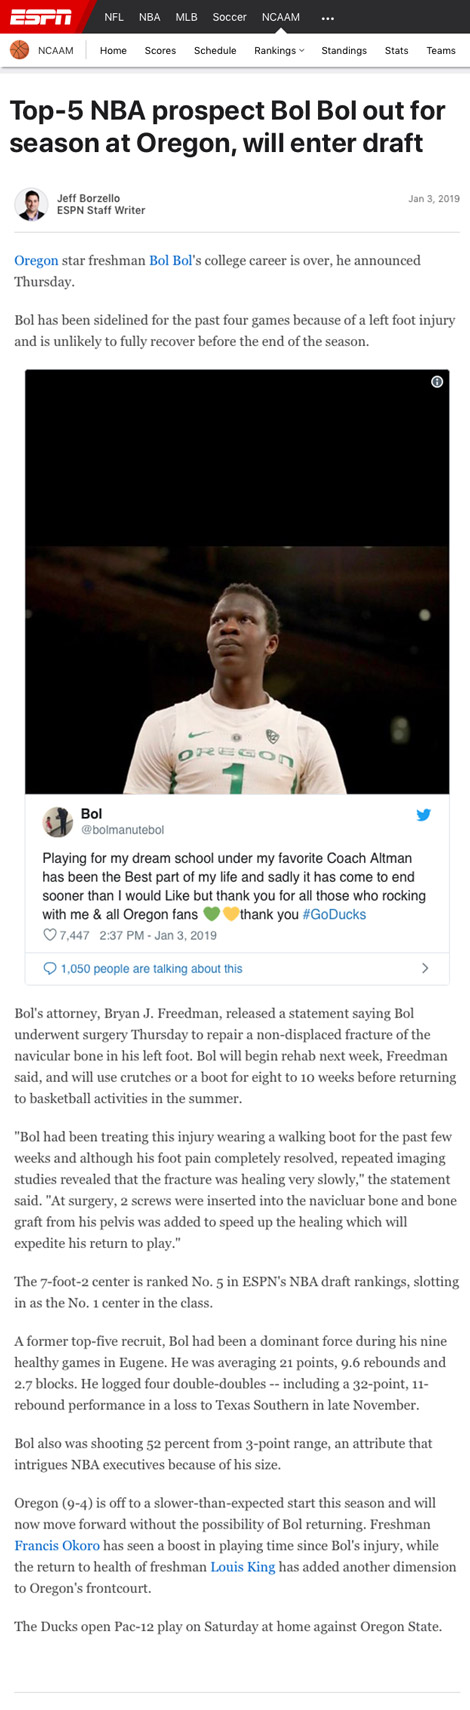 Top-5 NBA prospect Bol Bol out for season at Oregon, will enter draft - article by ESPN.com